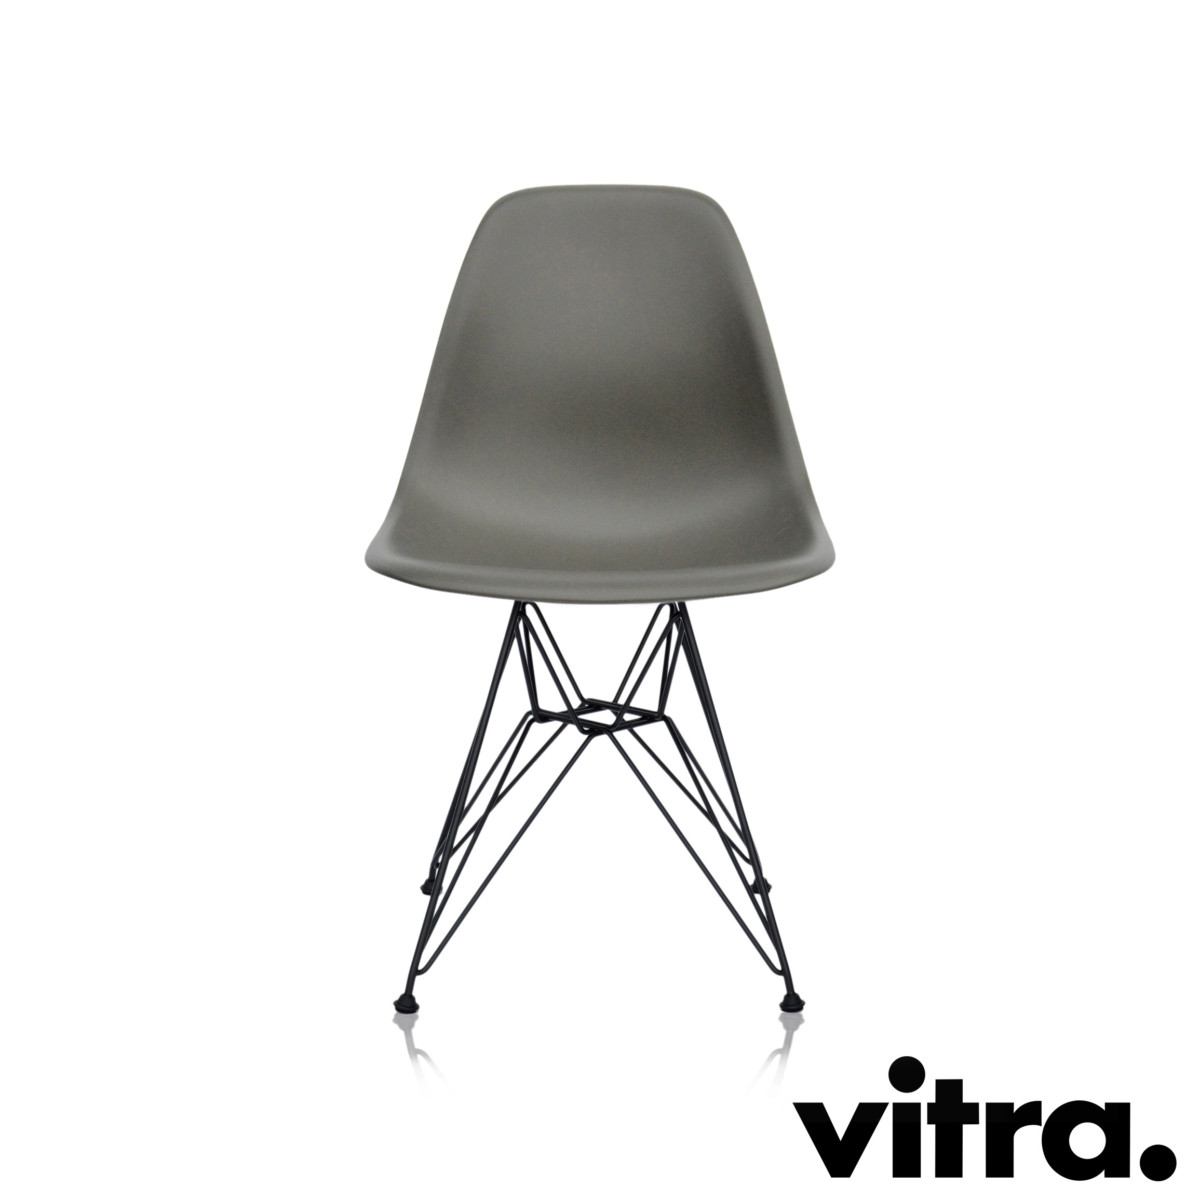 eames plastic side chair vitra price home interior and furniture ideas. Black Bedroom Furniture Sets. Home Design Ideas